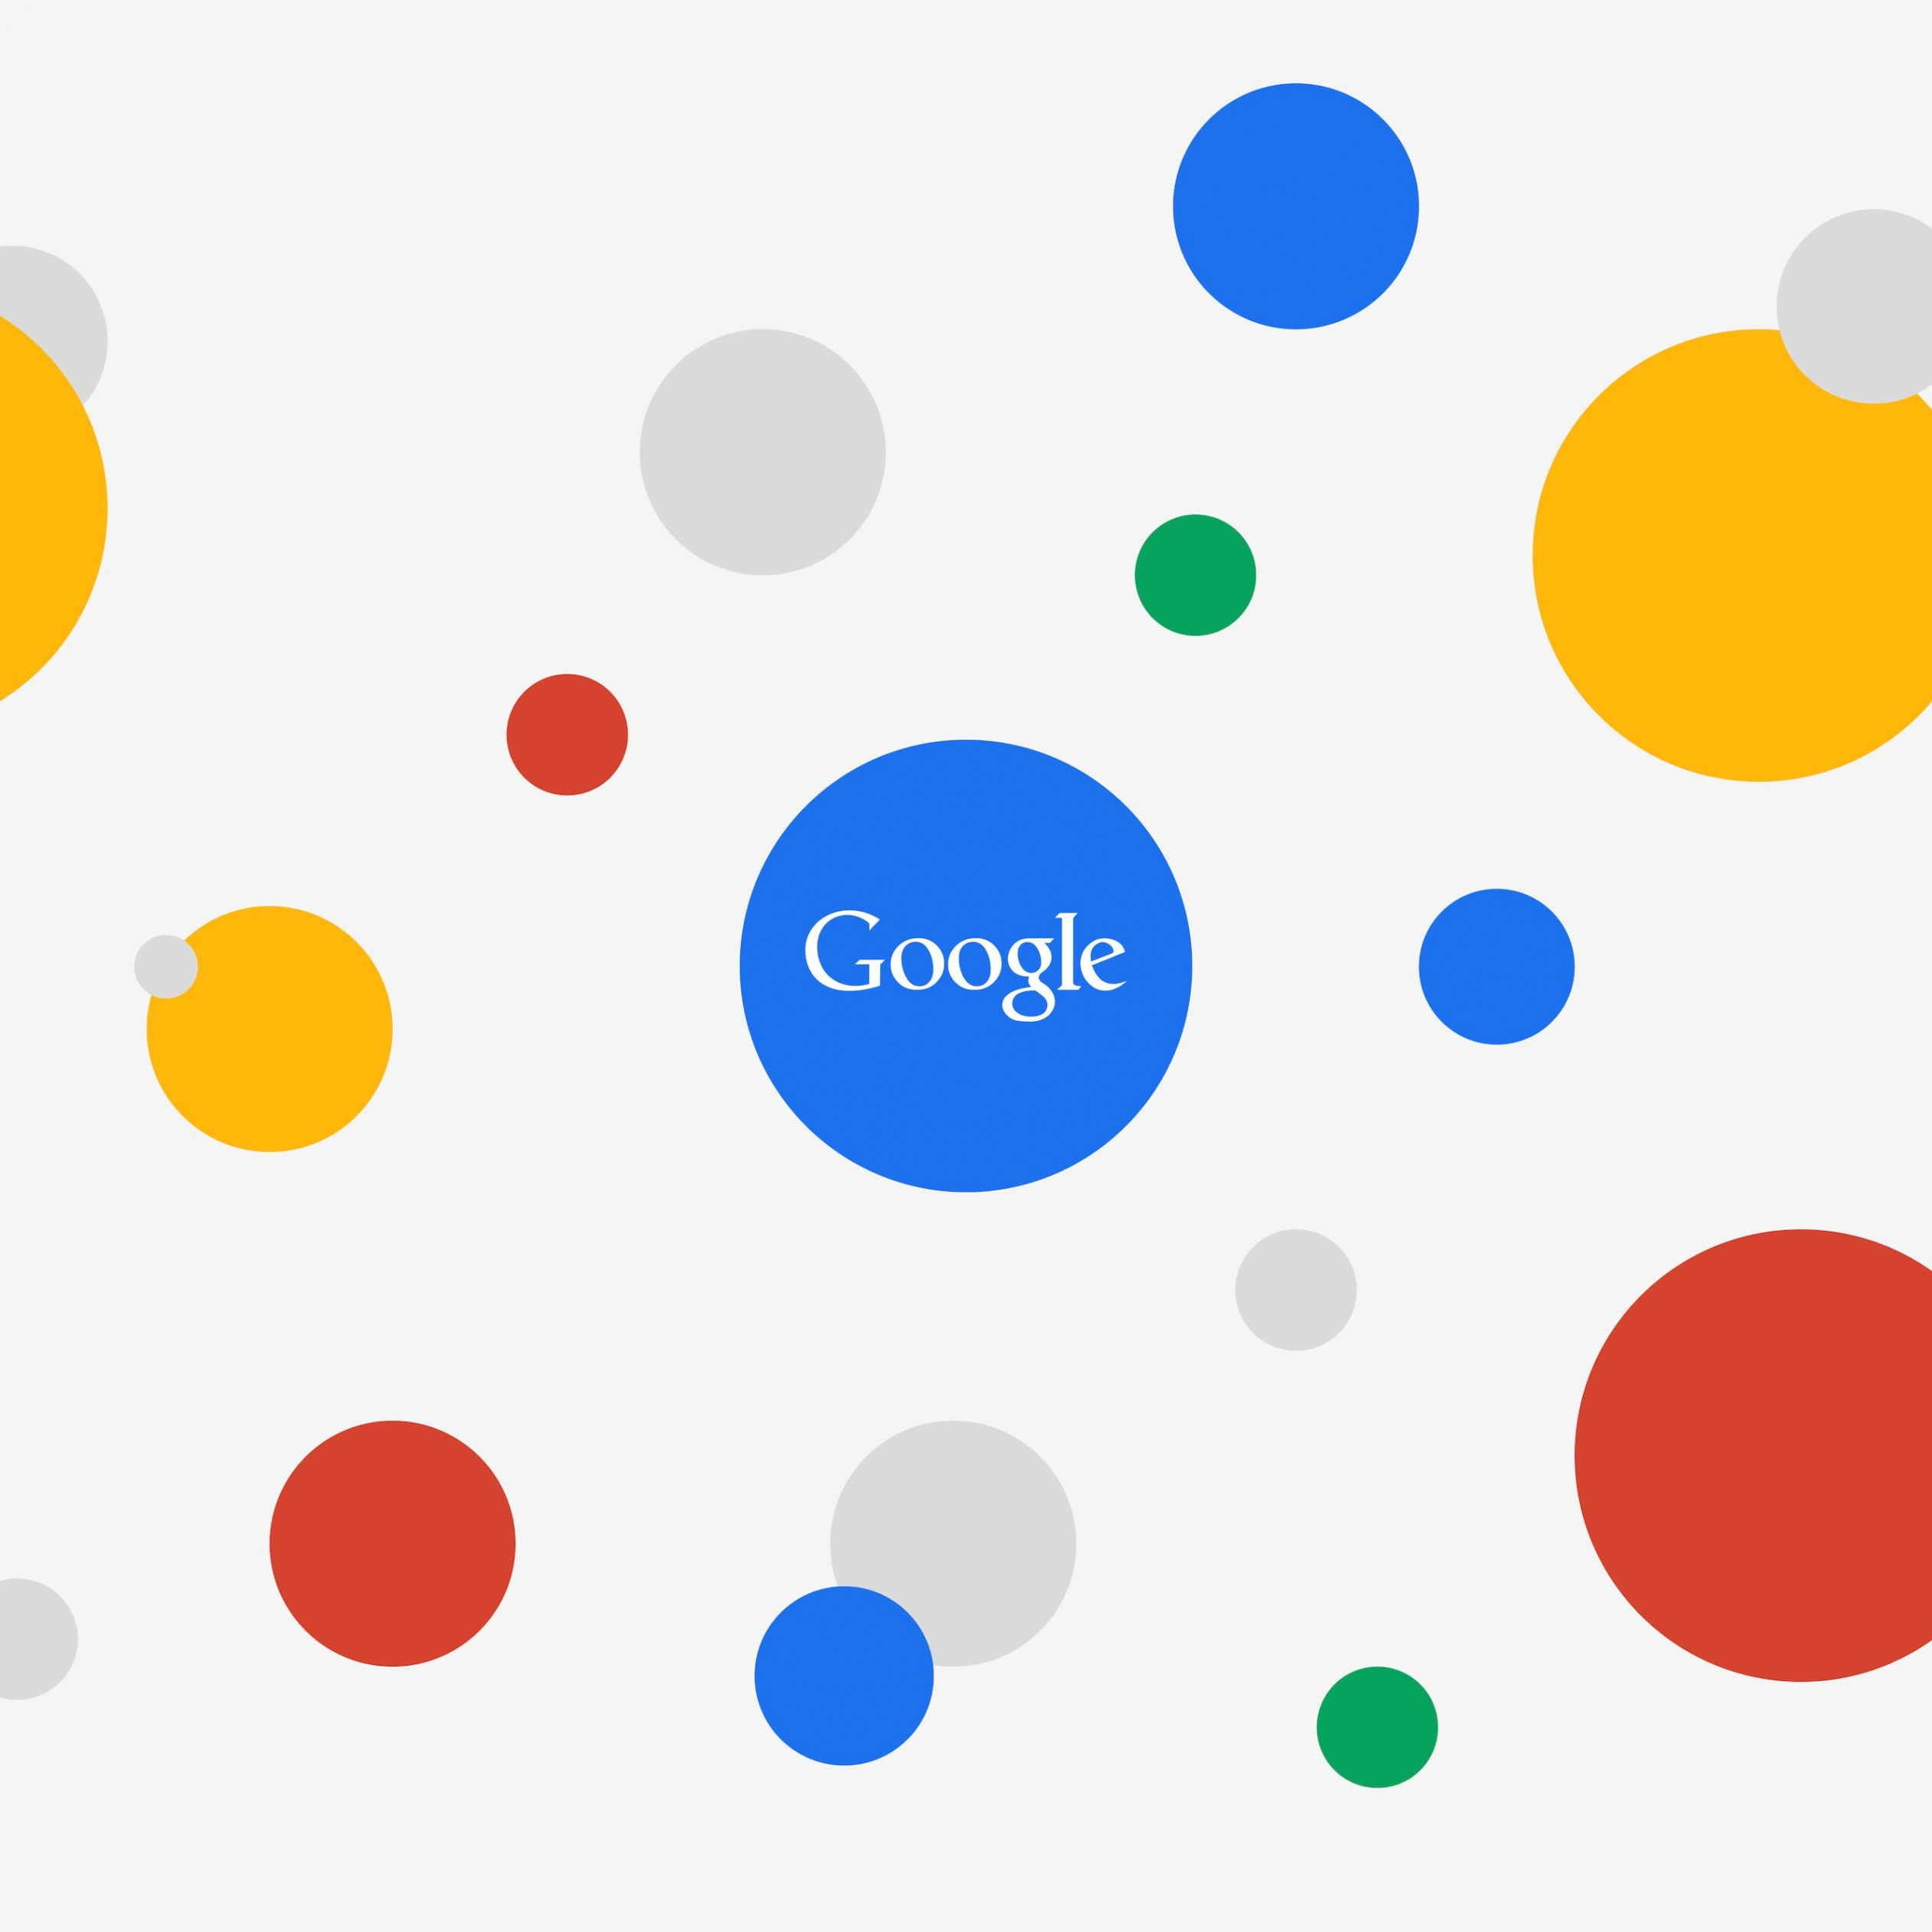 Google Circles Light Wallpaper for Apple iPad mini 2